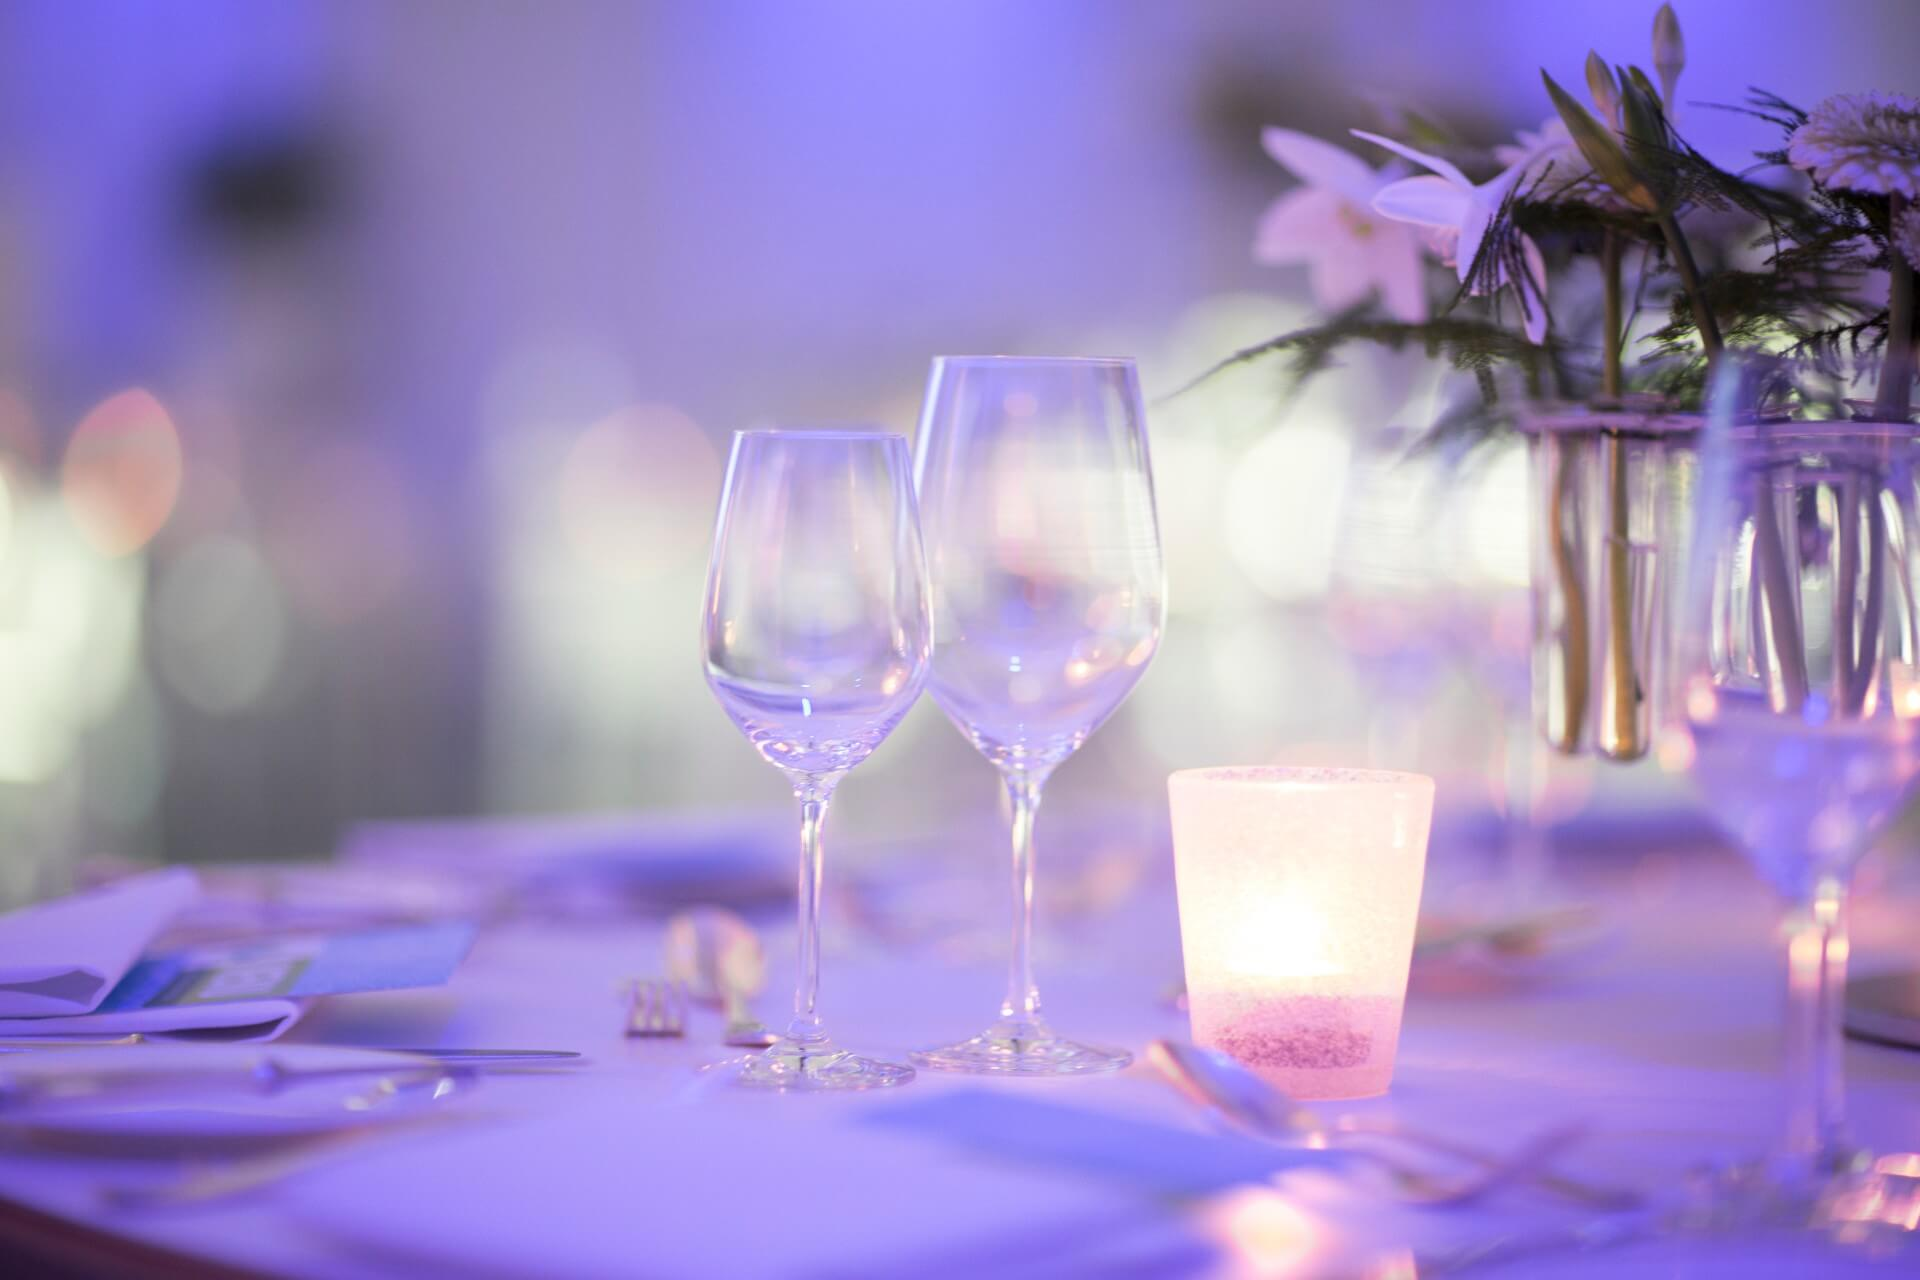 Weddings & Social events